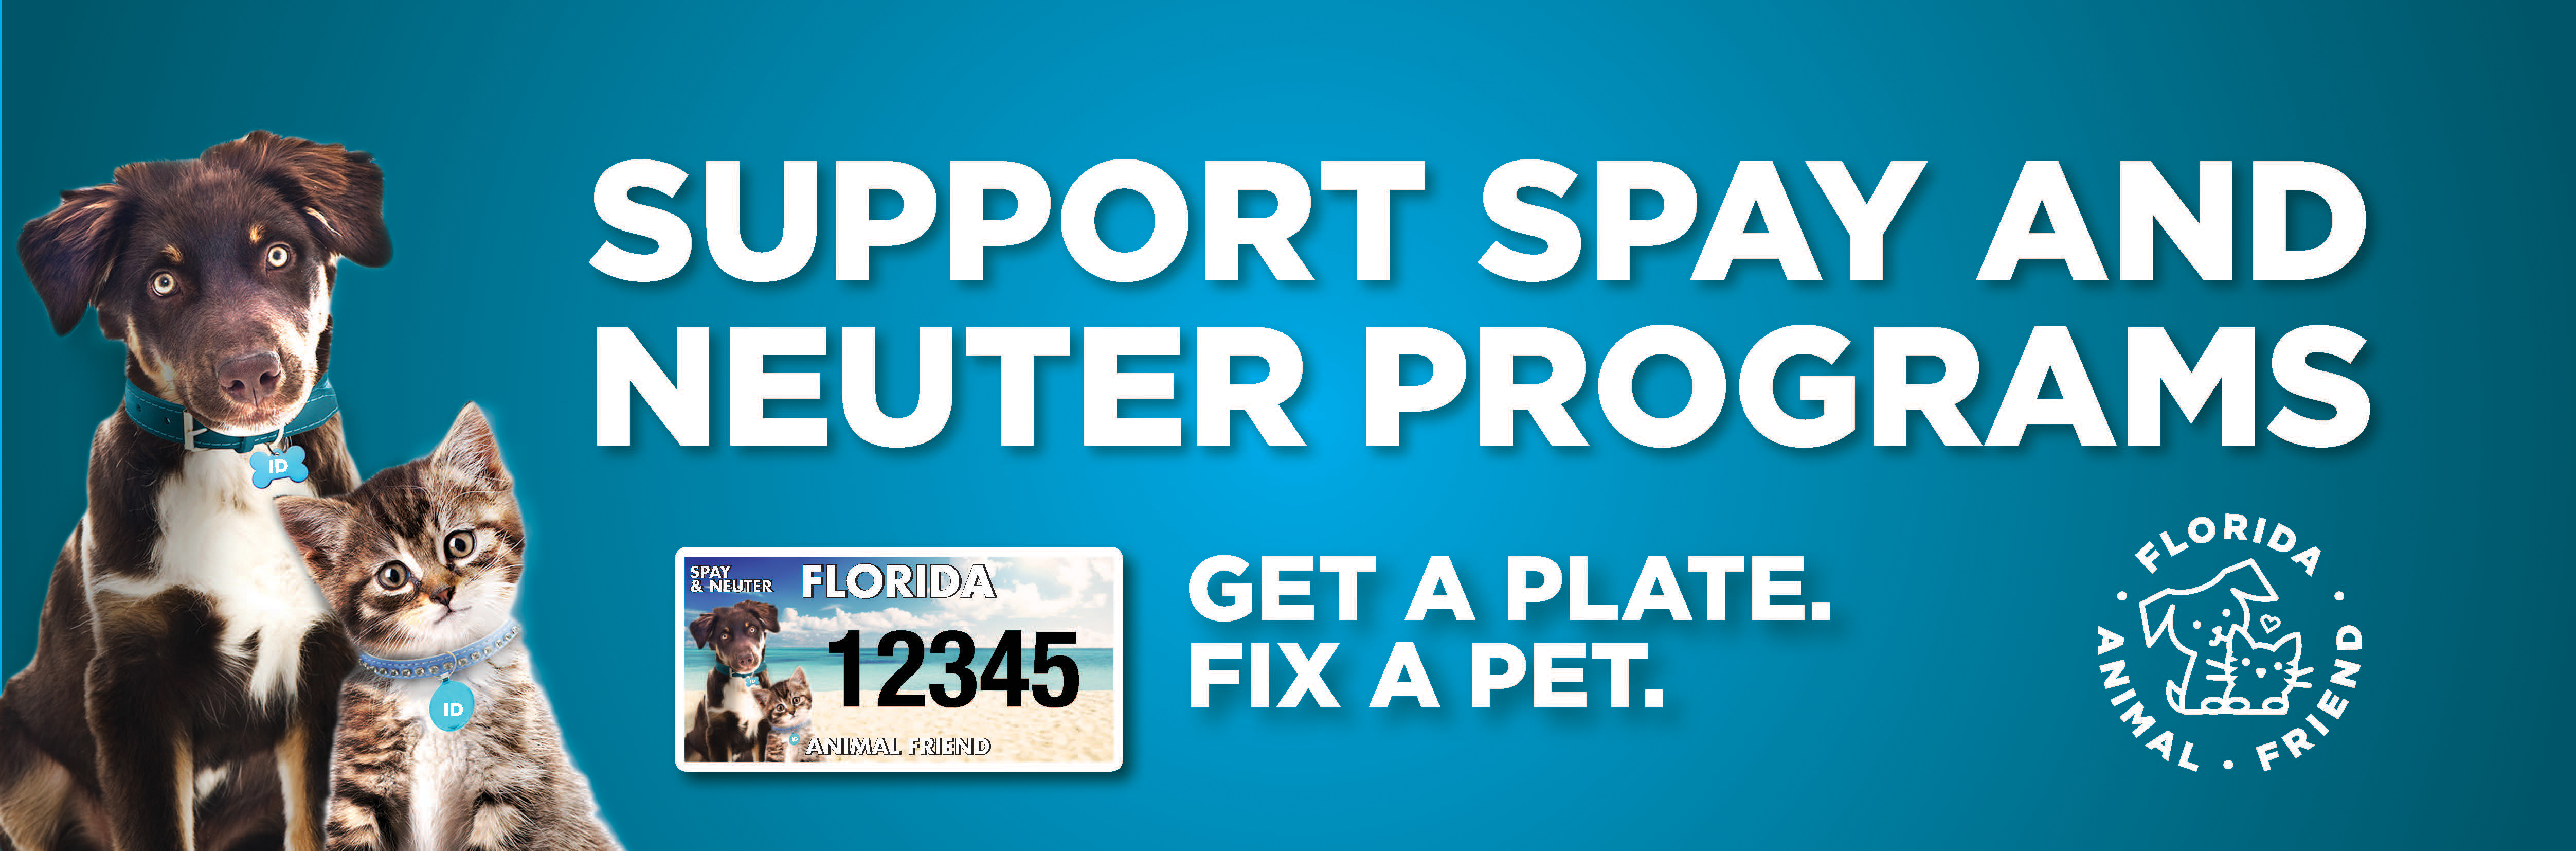 Support Spay and Neuter Programs.  Get a Plate. Fix a Pet. Florida Animal Friend